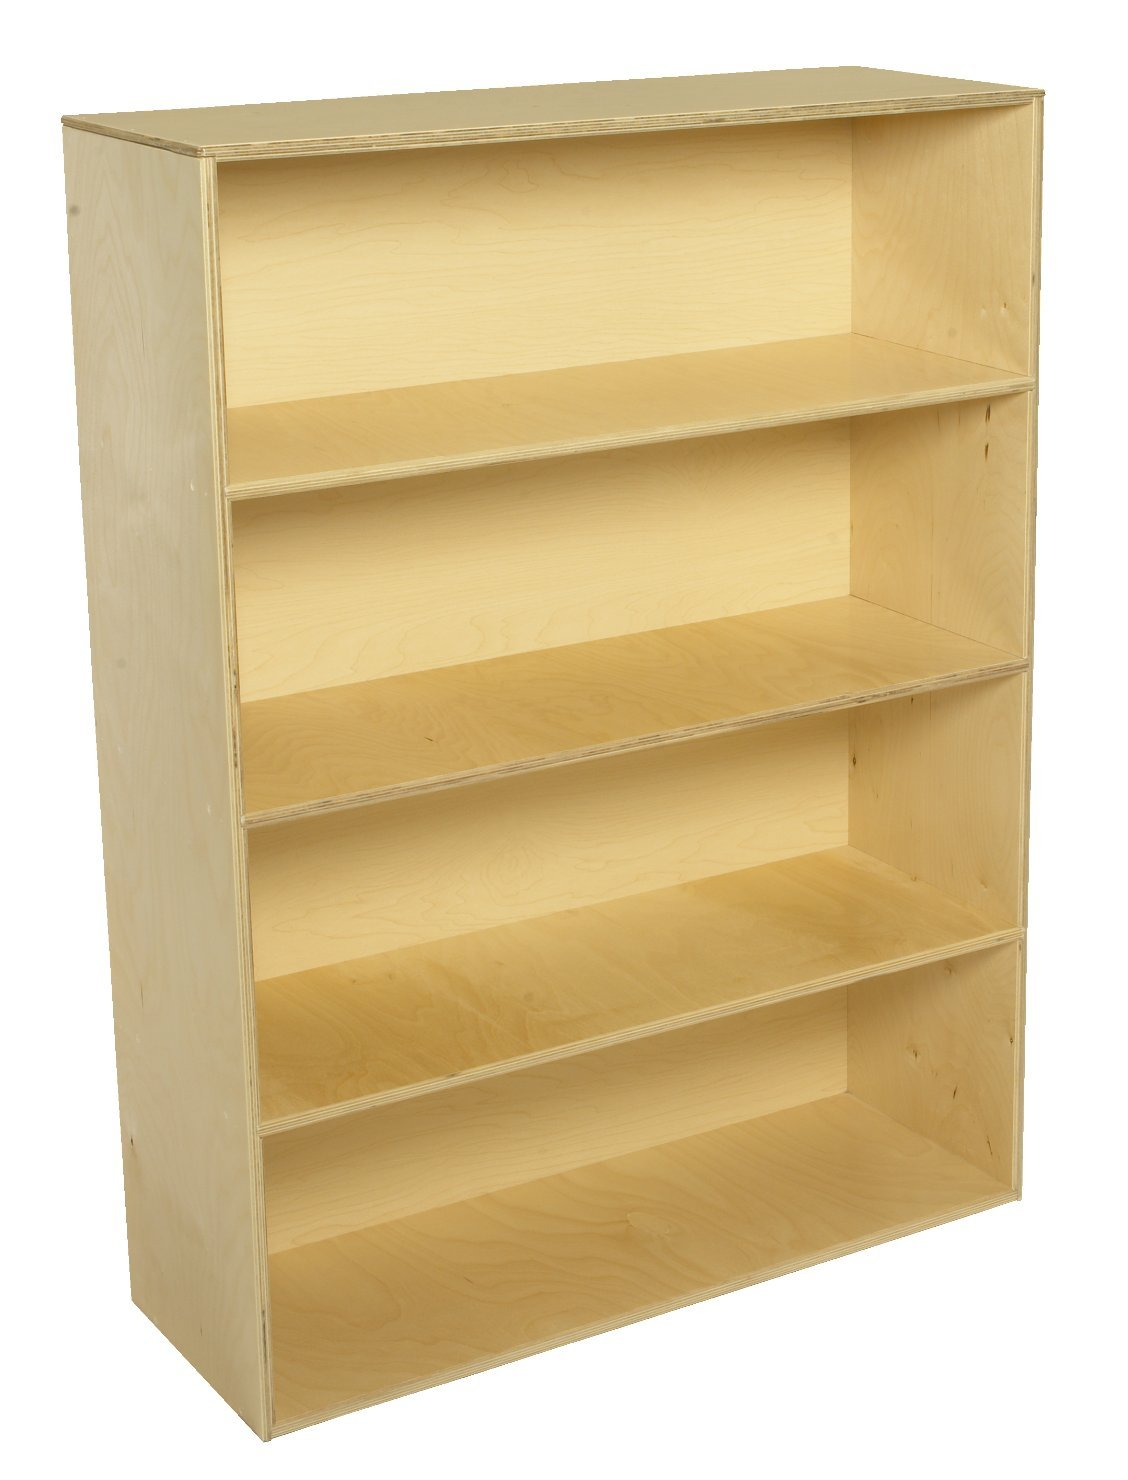 Childcraft 1464419 4-Shelf Storage Unit, 35-3/4 x 13 x 48 Inches Height,13 Inches Width,35.75 Inches Length,Natural Wood